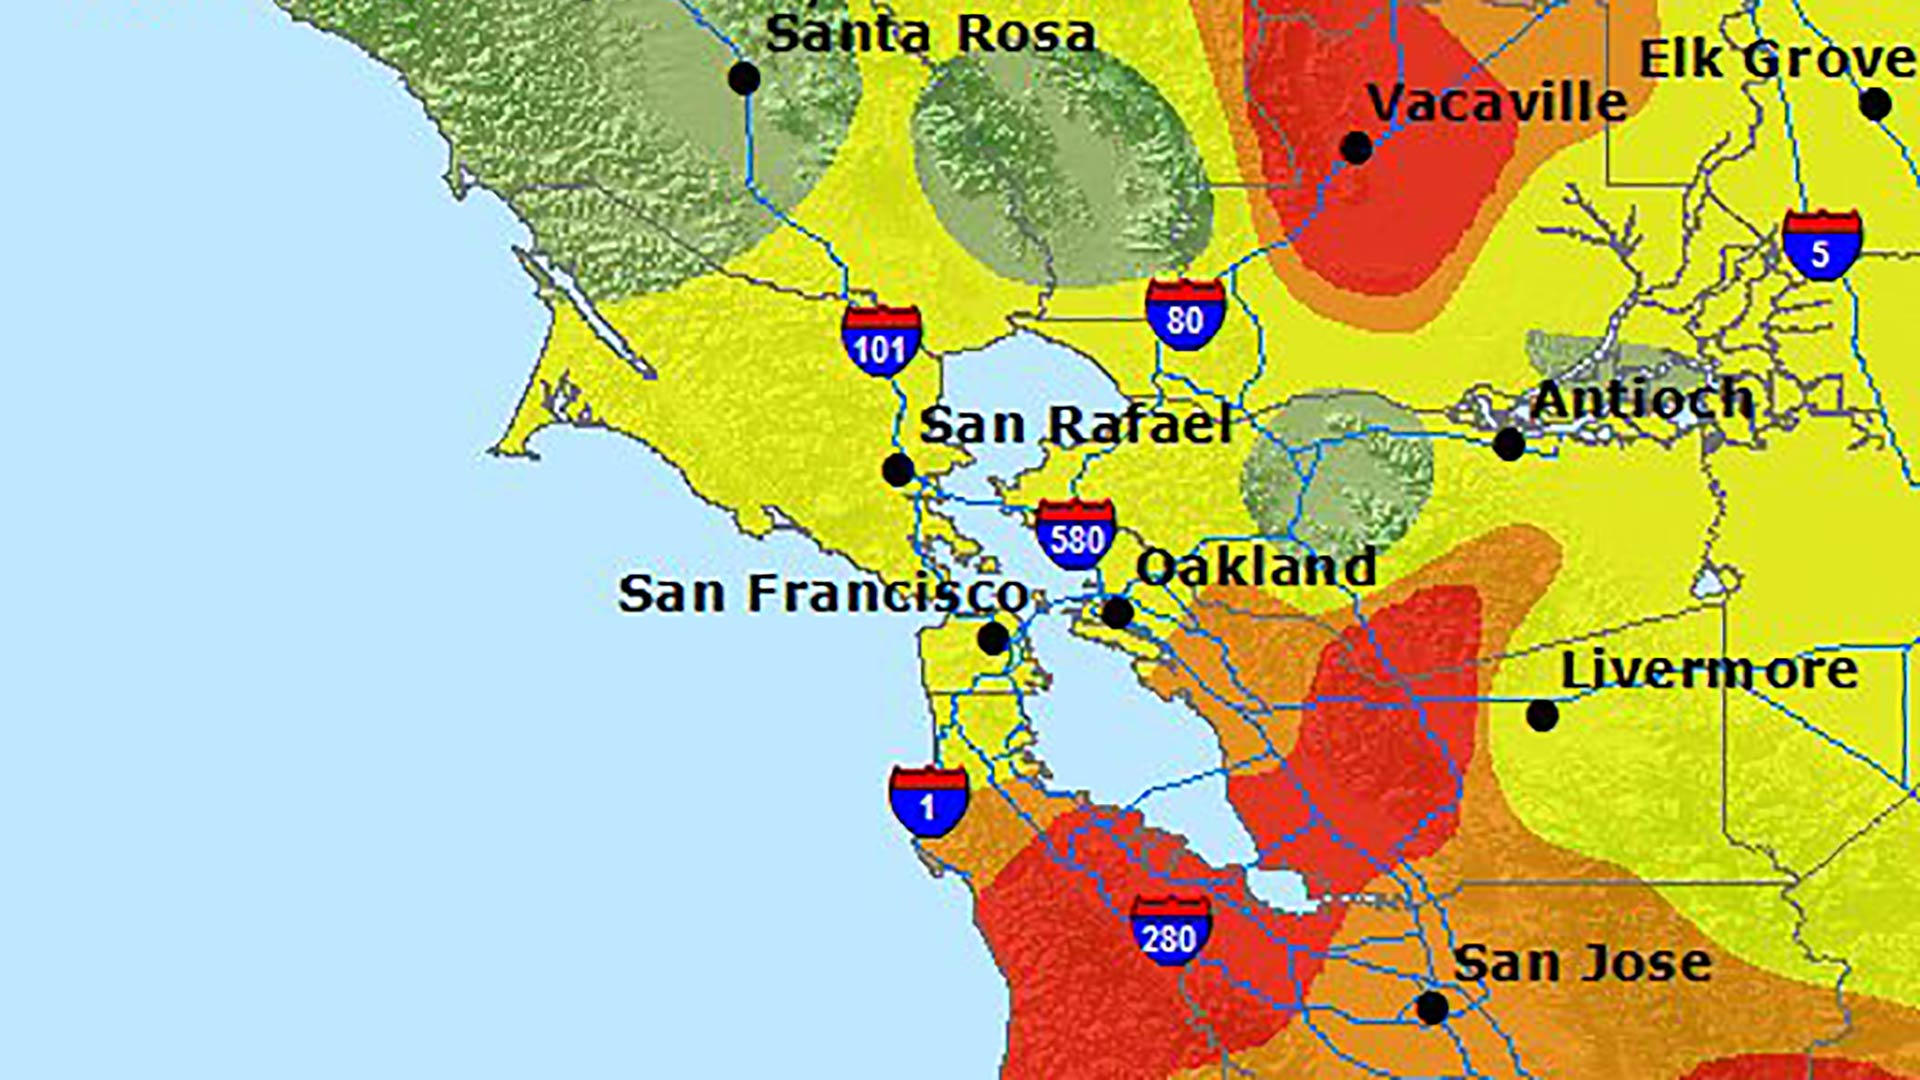 Map Here S Your Current Air Quality Report For The Bay Area Kqed Us epa pm2.5 aqi an air quality index (aqi) is a number used by government agencies to communicate to the public how polluted the. map here s your current air quality